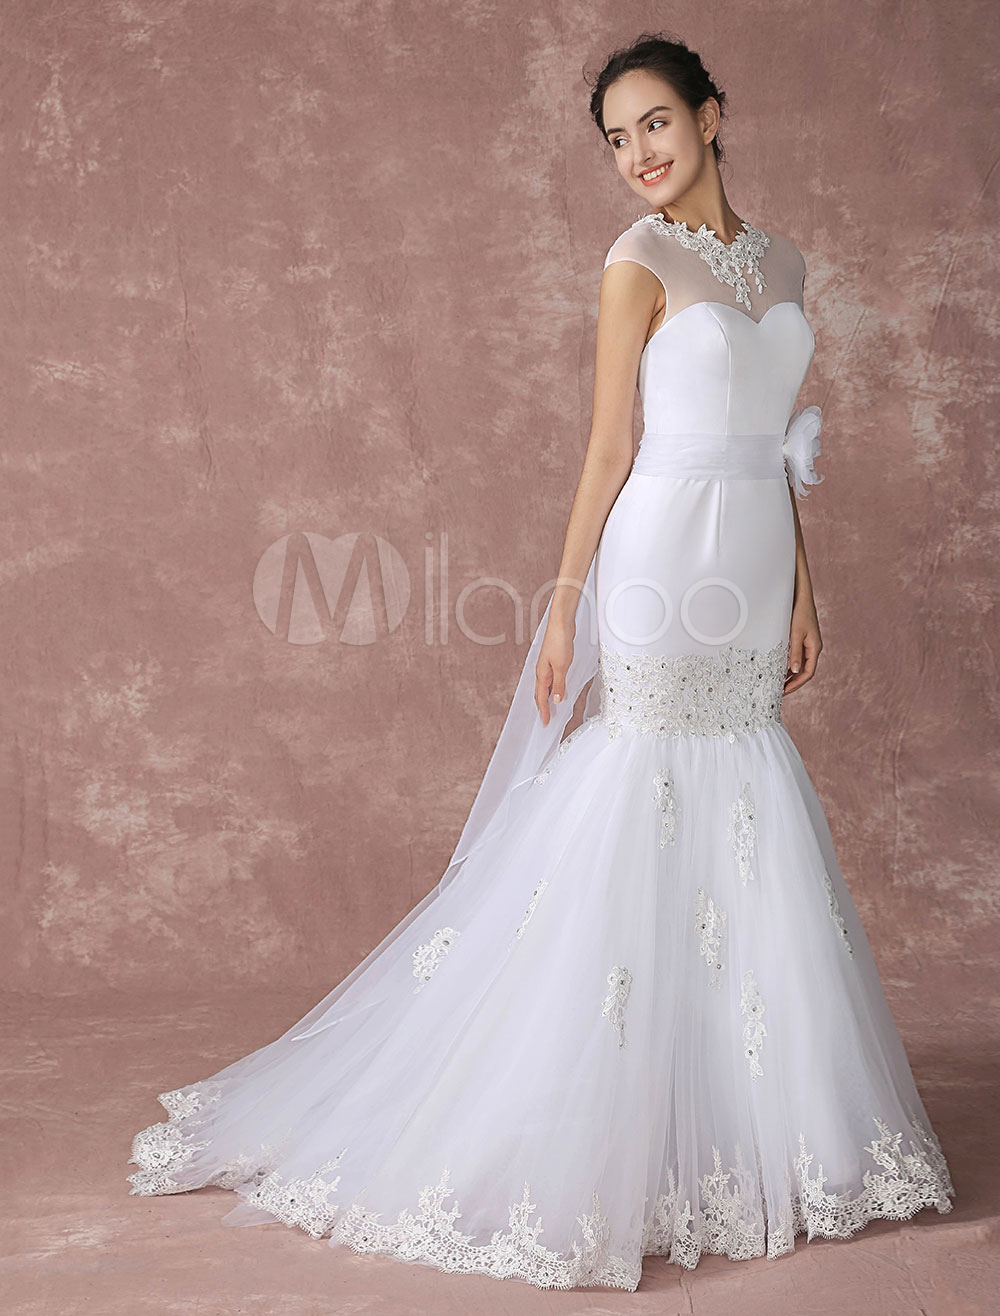 Buy Lace Wedding Dress Mermaid Court Chapel Train Bridal Gown Illusion Back Lace Applique Beading Tulle Bridal Dress With Panel Train Milanoo for $252.89 in Milanoo store